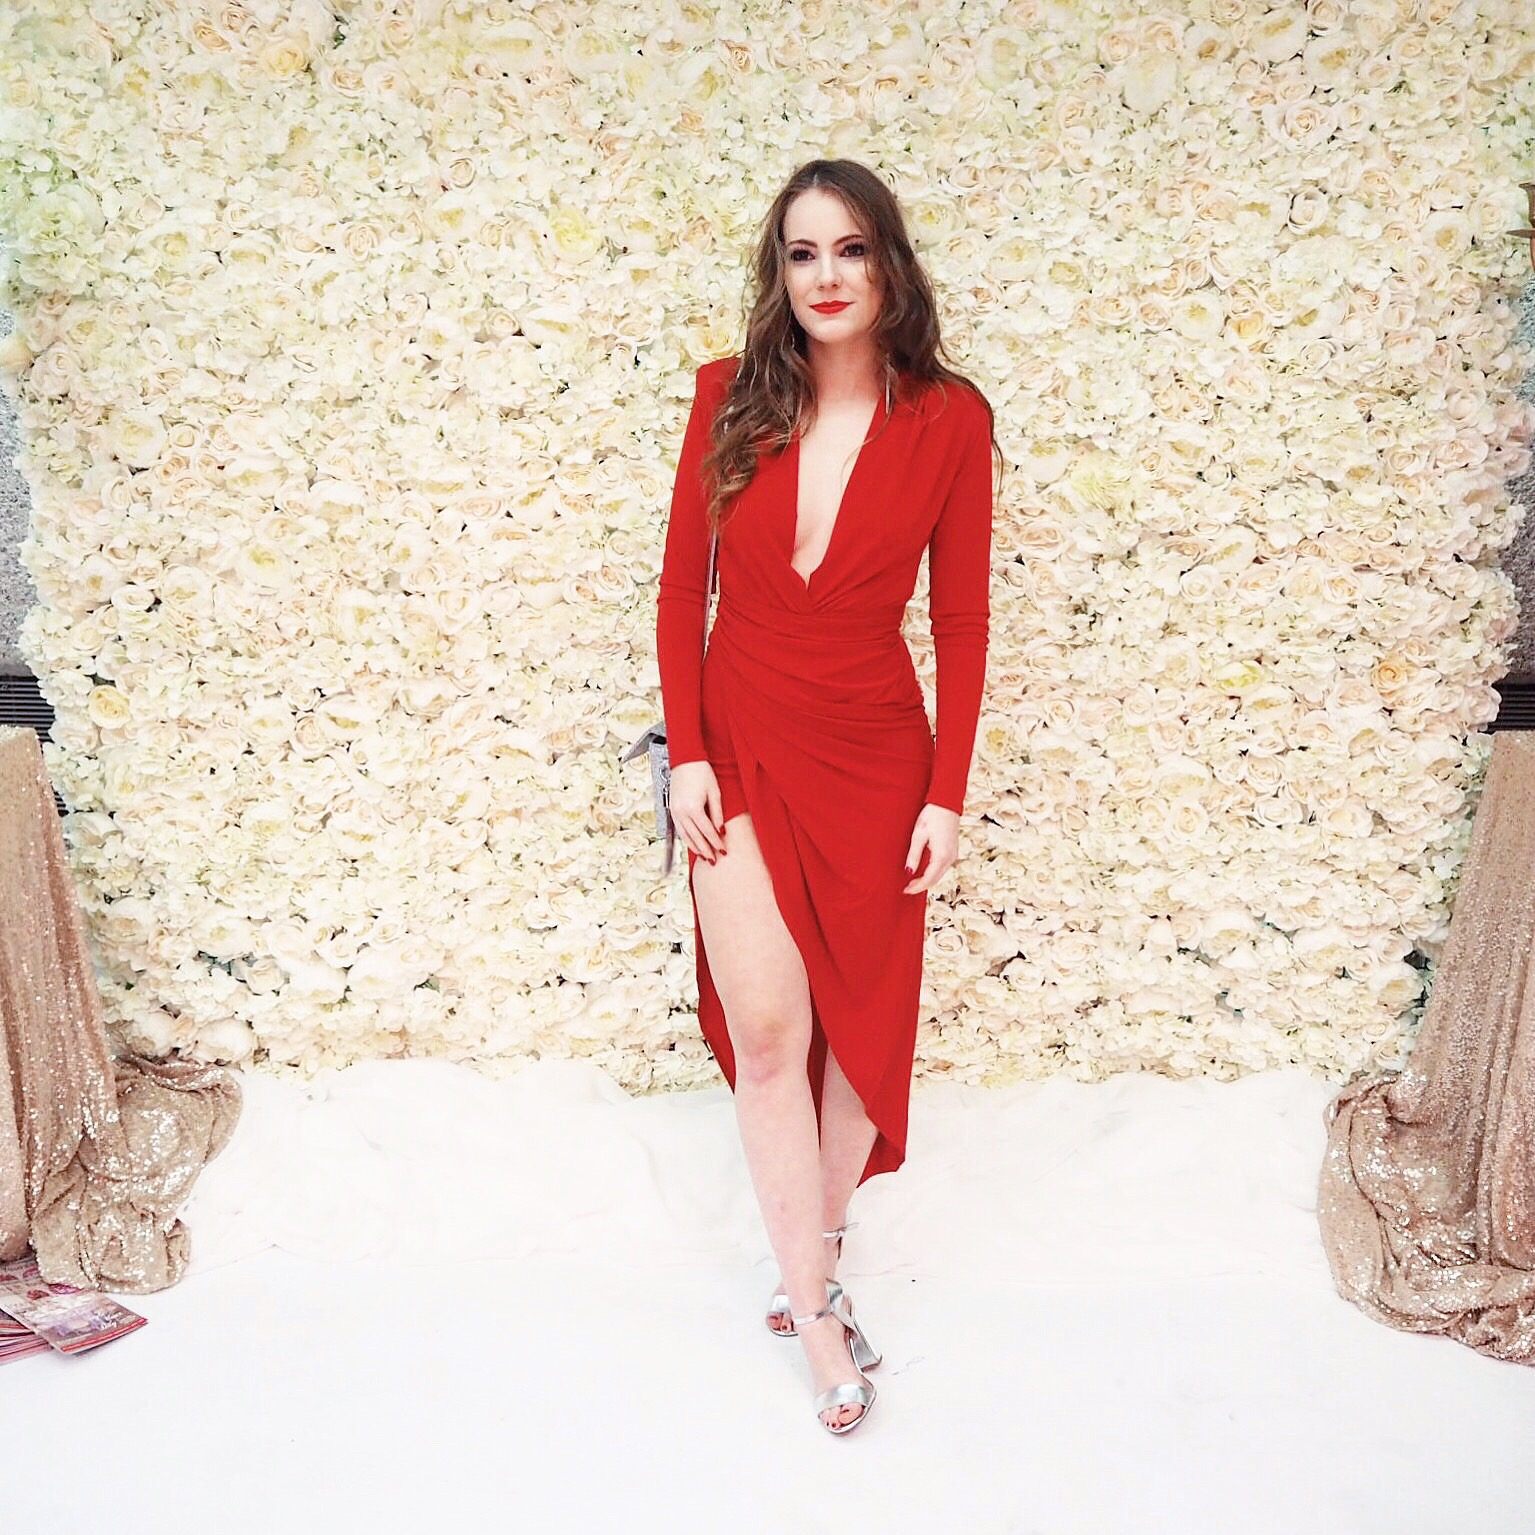 gala event, go glam, gala attire, goglam gala, go send, red dress, embrace pale skin, plunge red dress, wrap dress, red asos dress